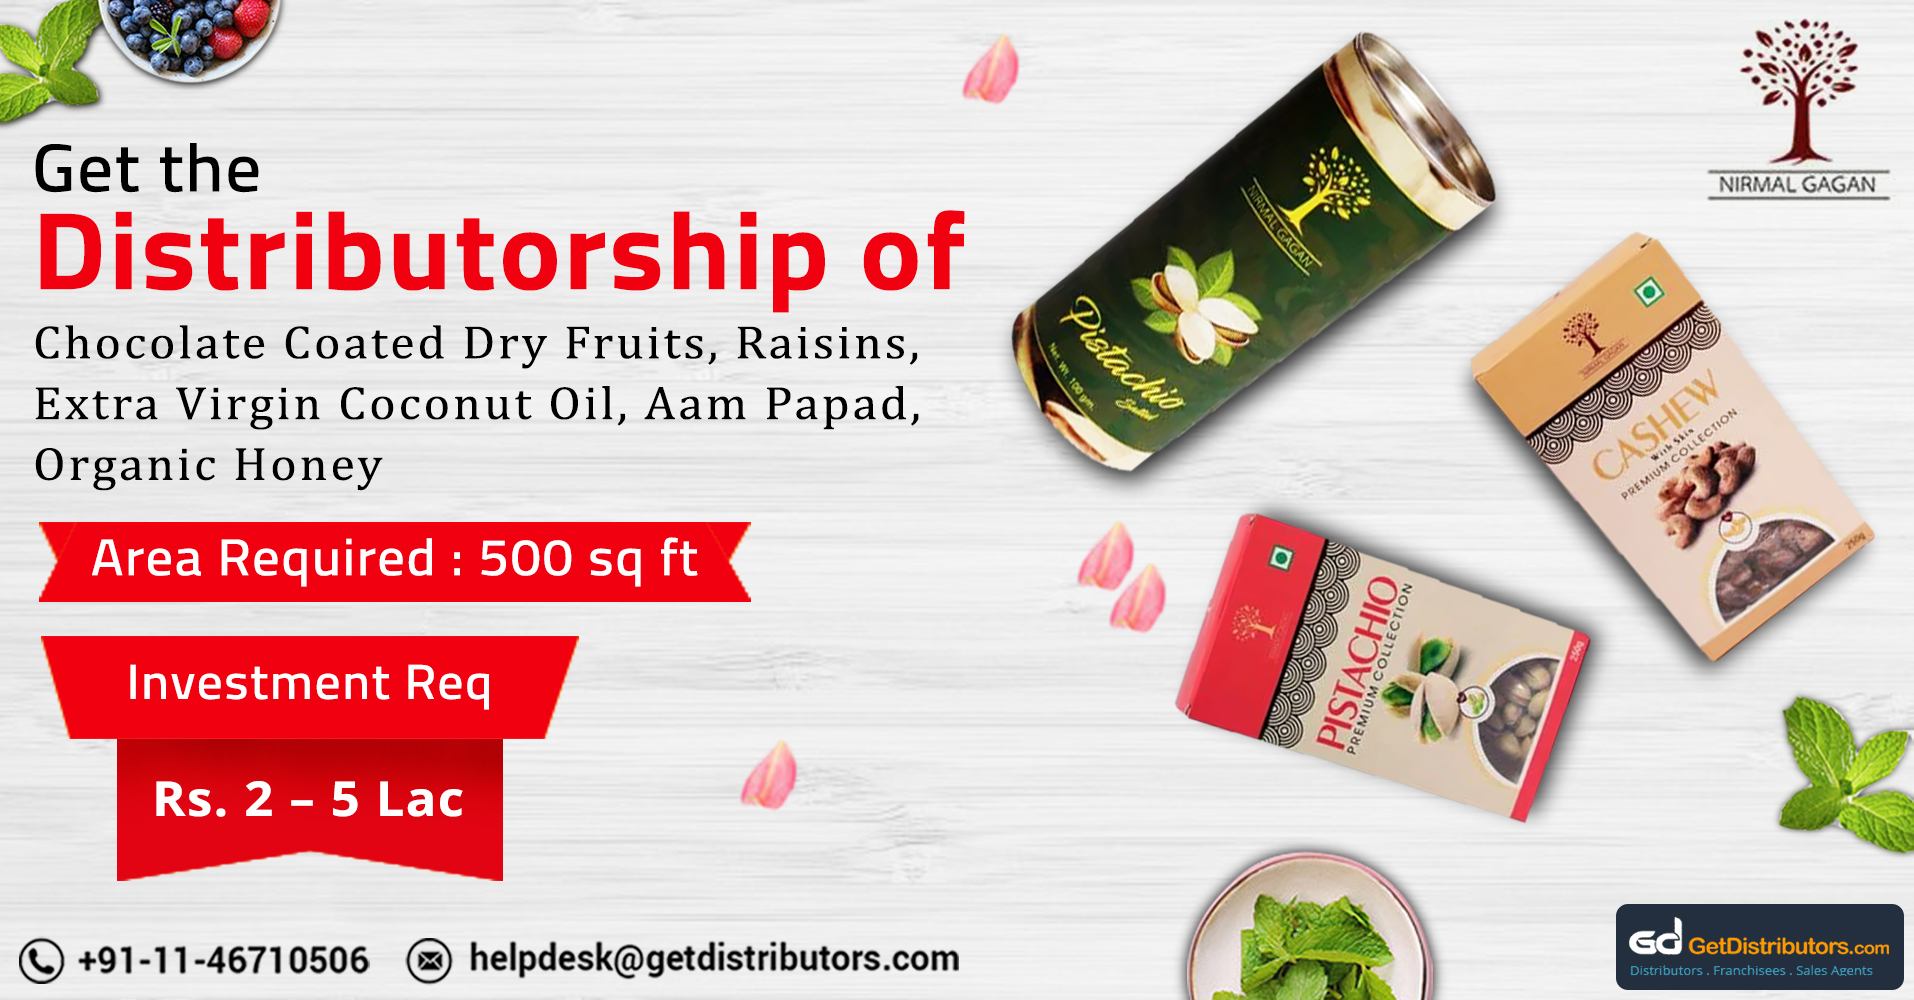 Choose Us For Dry Fruits, Coconut Oil, Organic Honey, And Other Fortified Food Products Distributorship